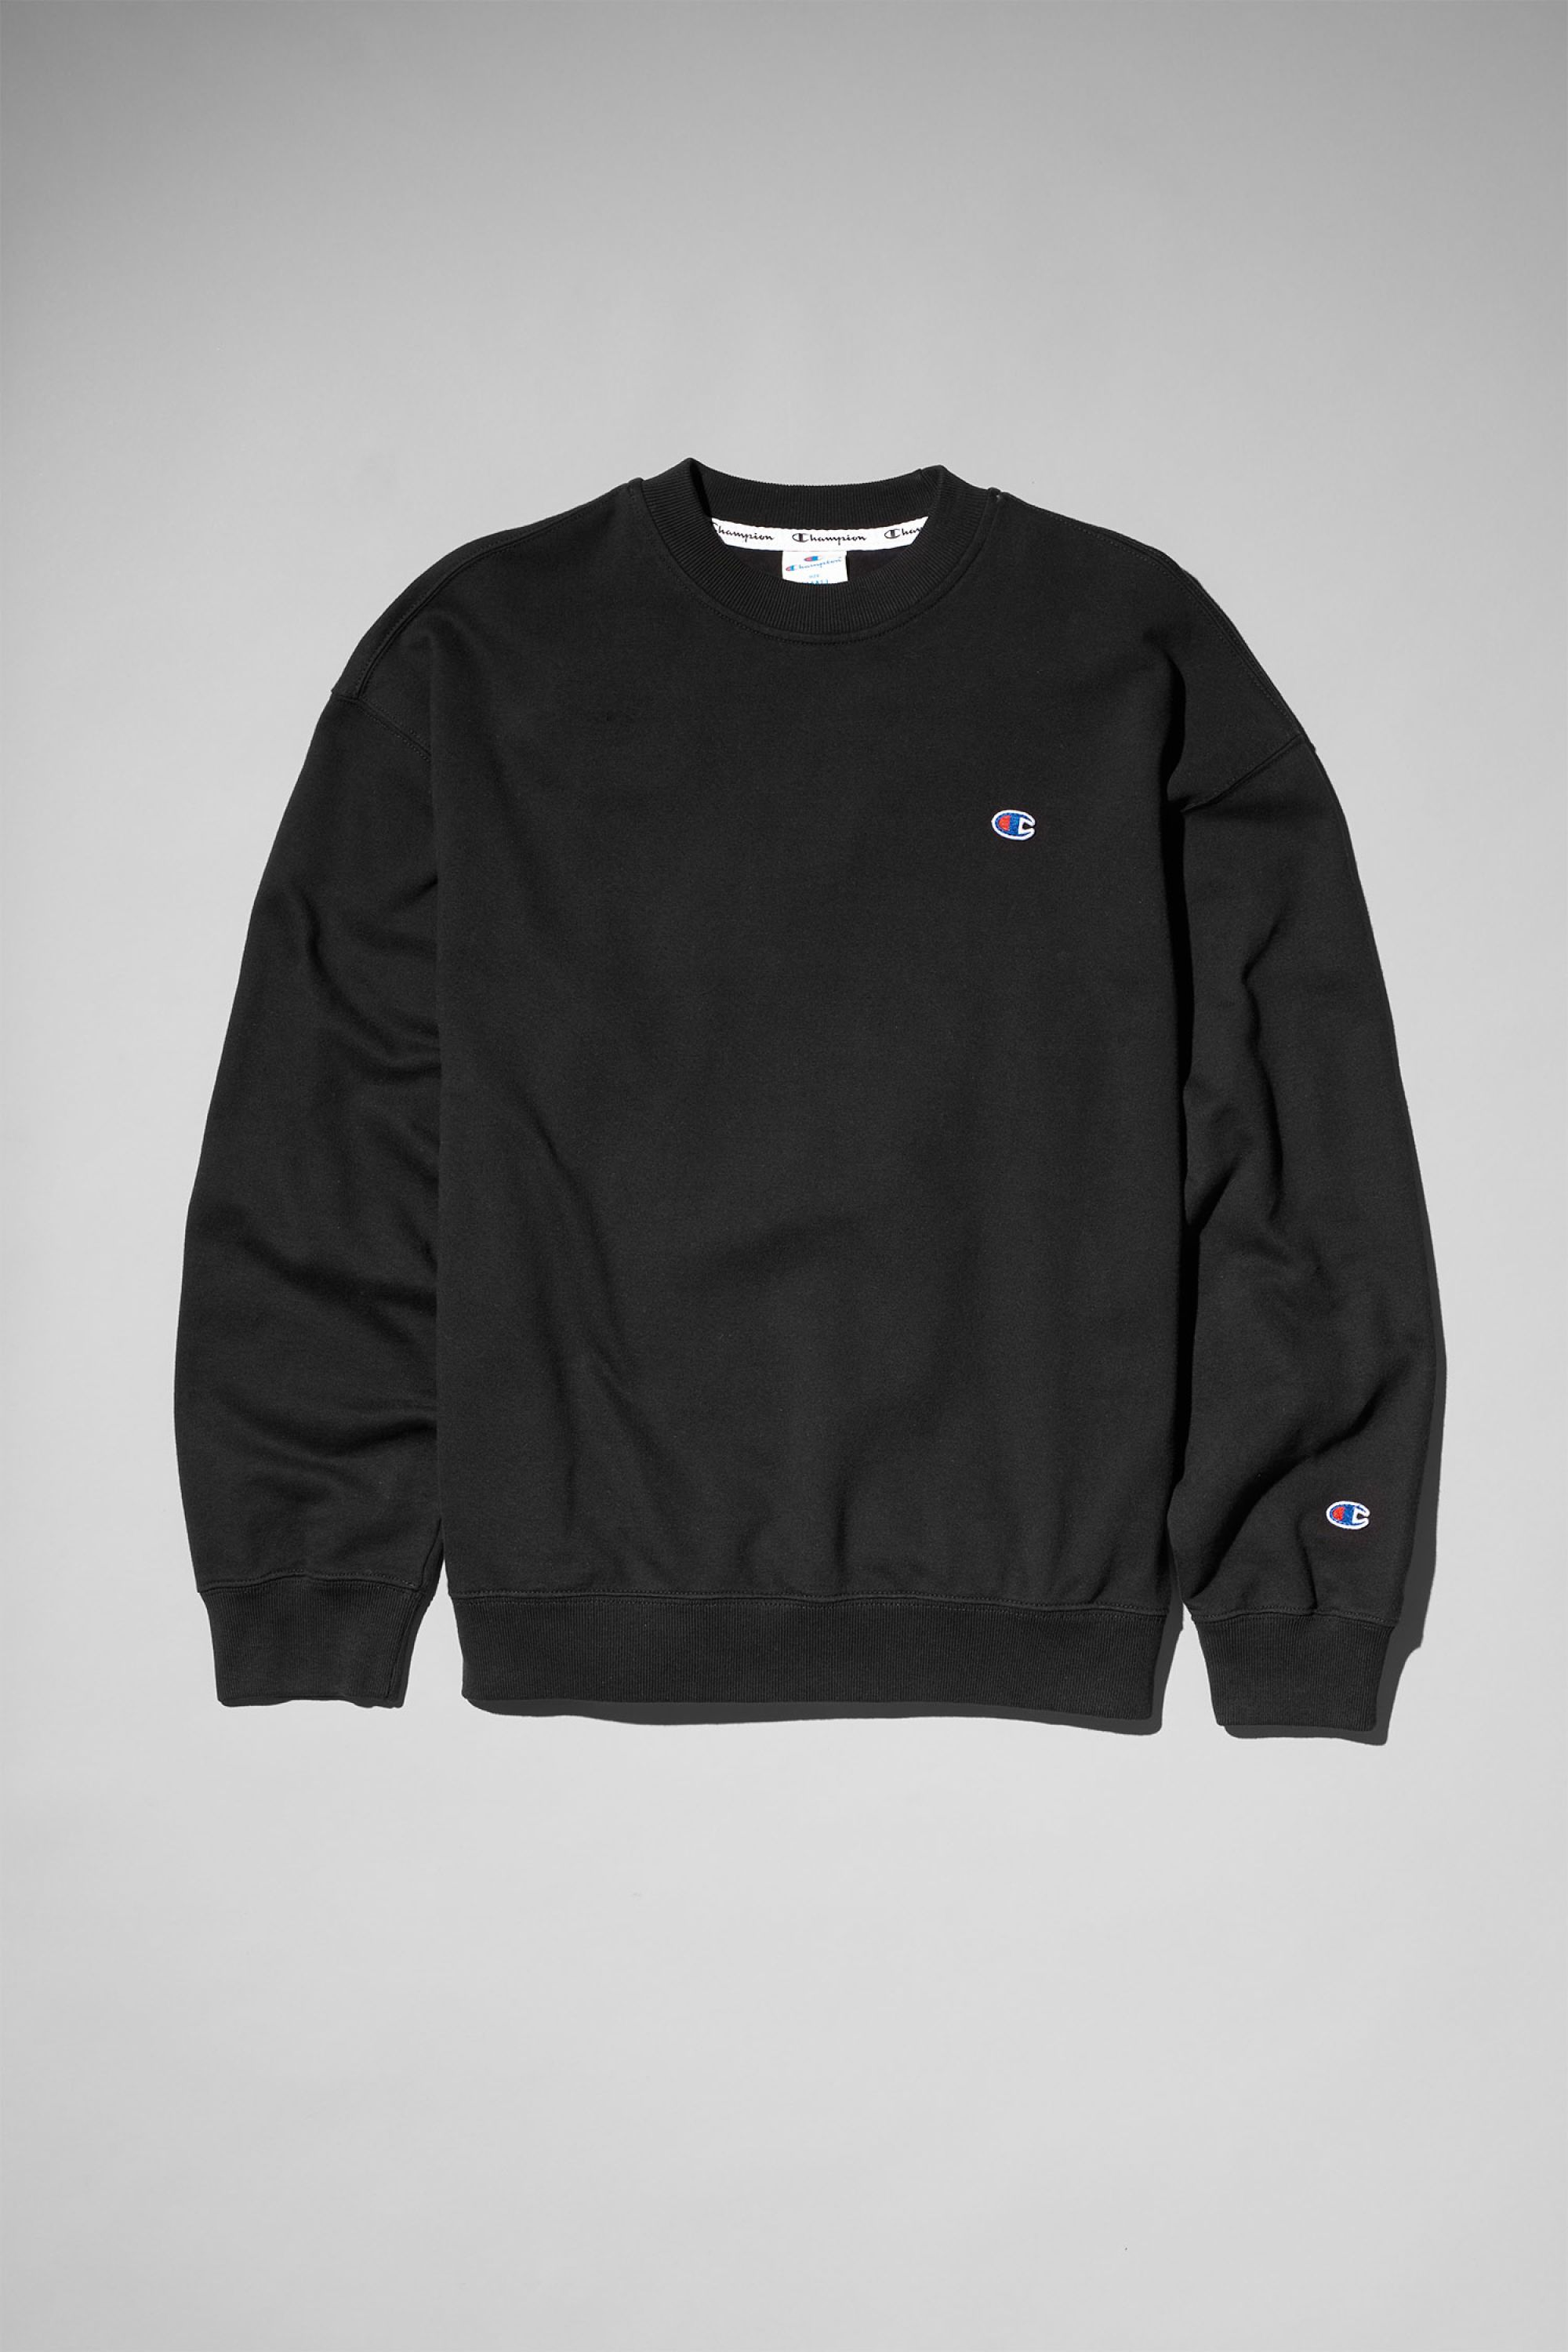 95b407f157 The Feel Crewneck Sweatshirt by Champion is a simple sweatshirt in an  oversized fit. Made of soft cotton, it has a relaxed fit with dropped  shoulders, disc